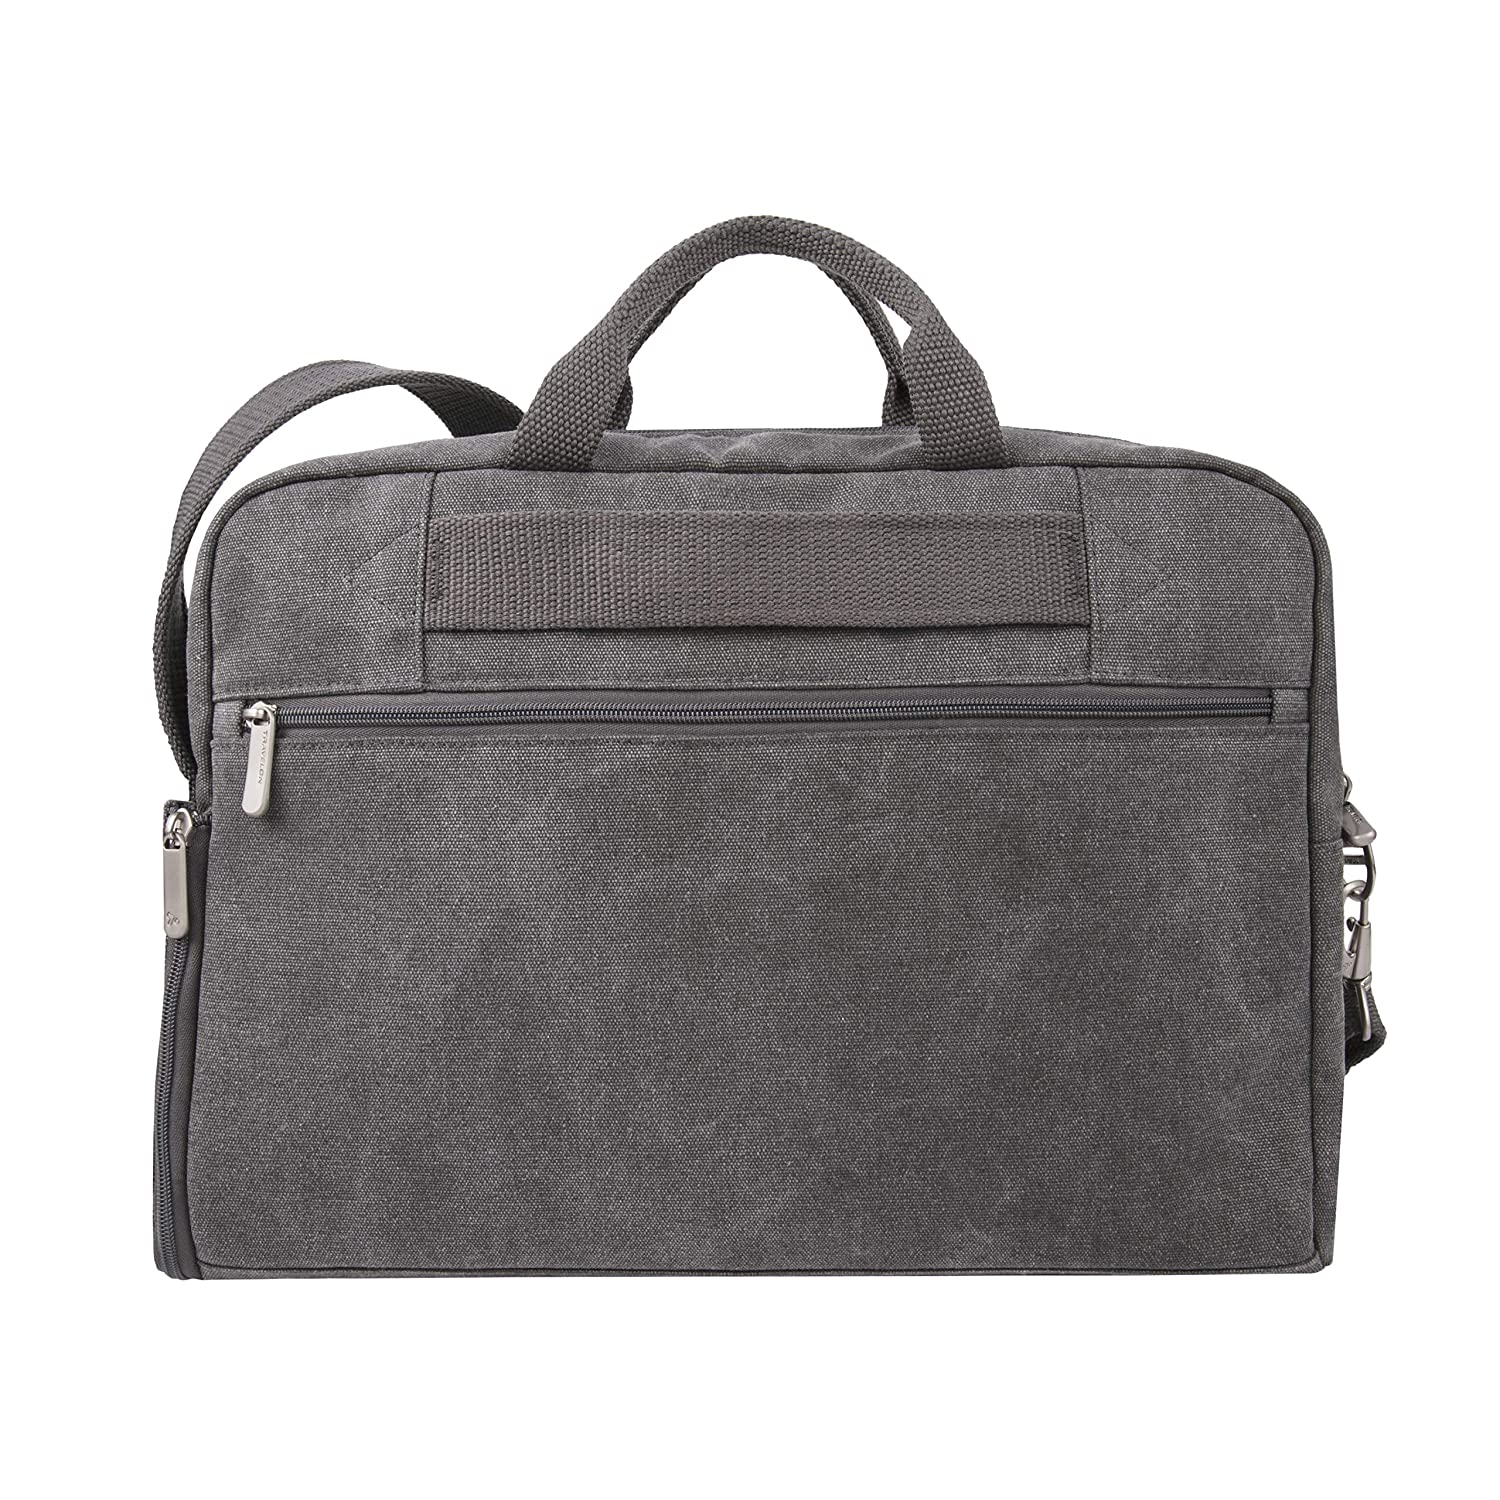 8692a9cfb Amazon.com | Travelon Anti-Theft Heritage Messenger Briefcase, Pewter | Messenger  Bags